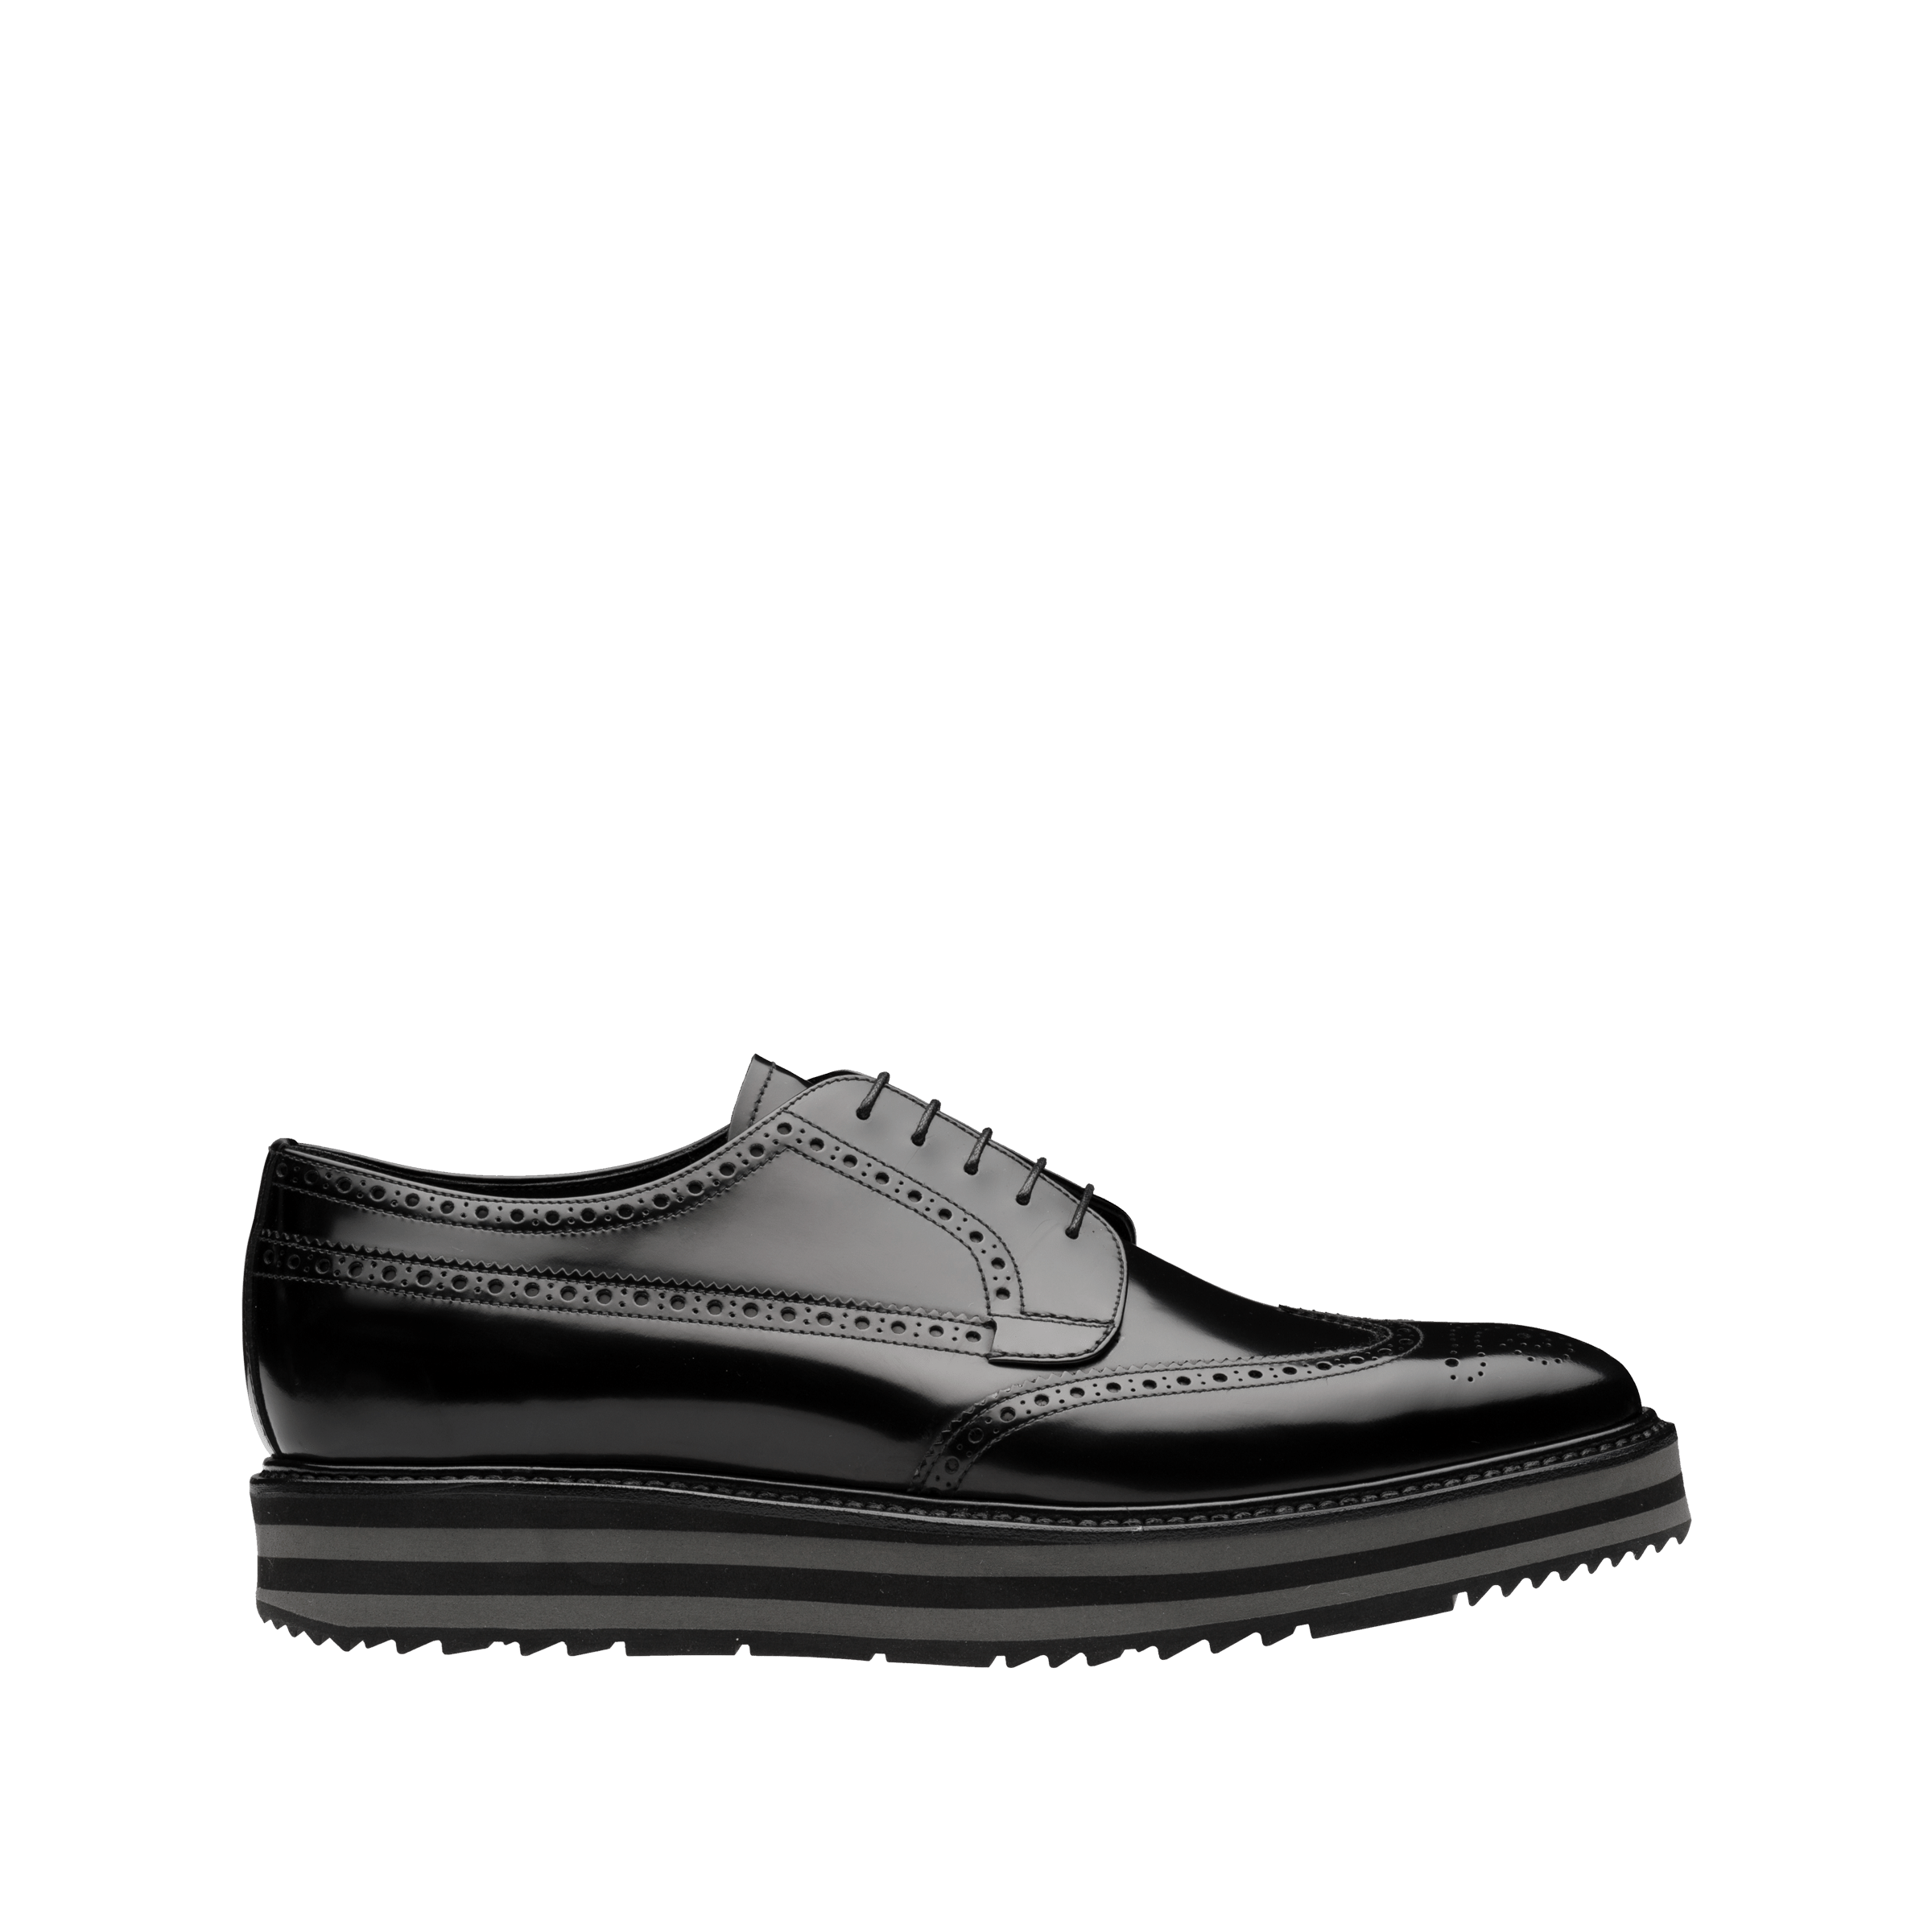 Leather Platform Derby Shoes BLACK Prada